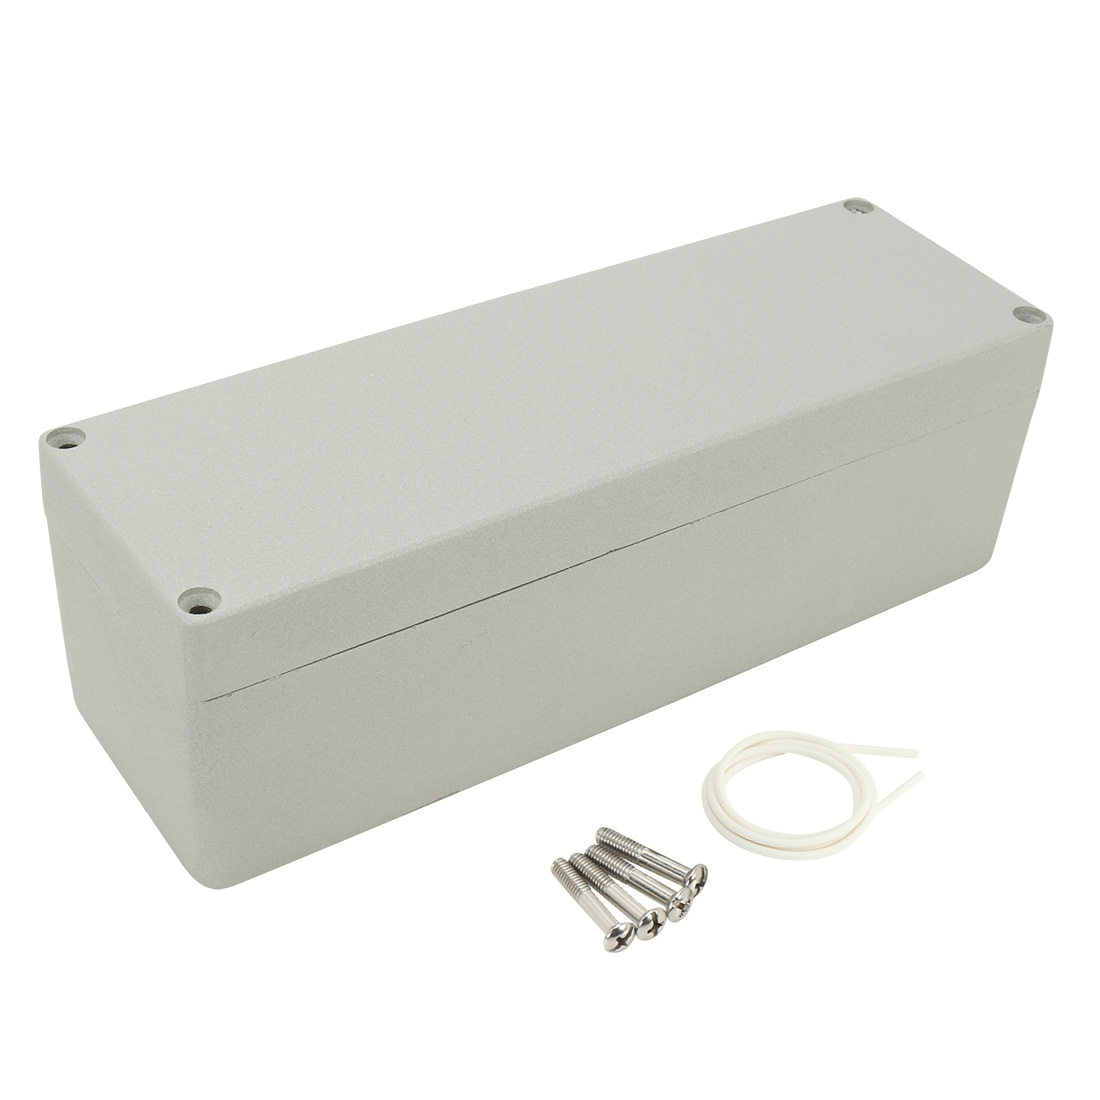 "9.8""x3.2""x3.2""(250mmx80mmx80mm) Aluminum Junction Box Universal Electric Project Enclosure"